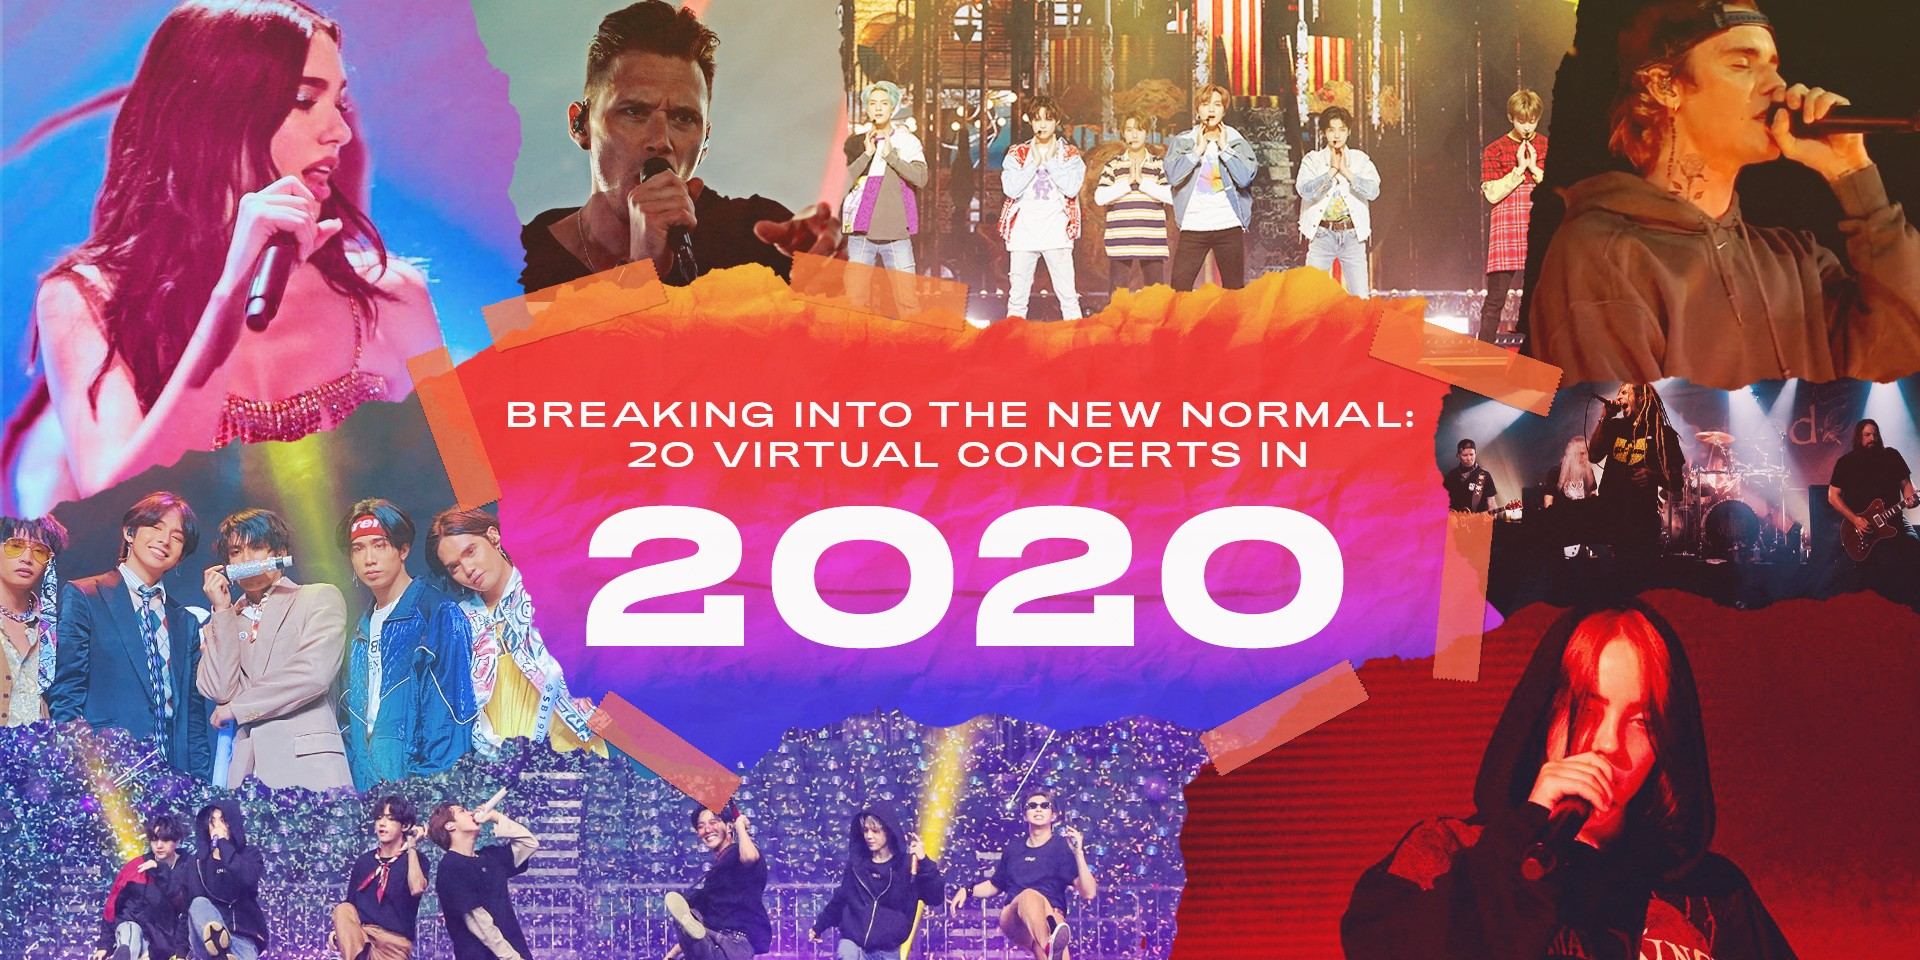 Breaking into the new normal: 20 virtual concerts in 2020